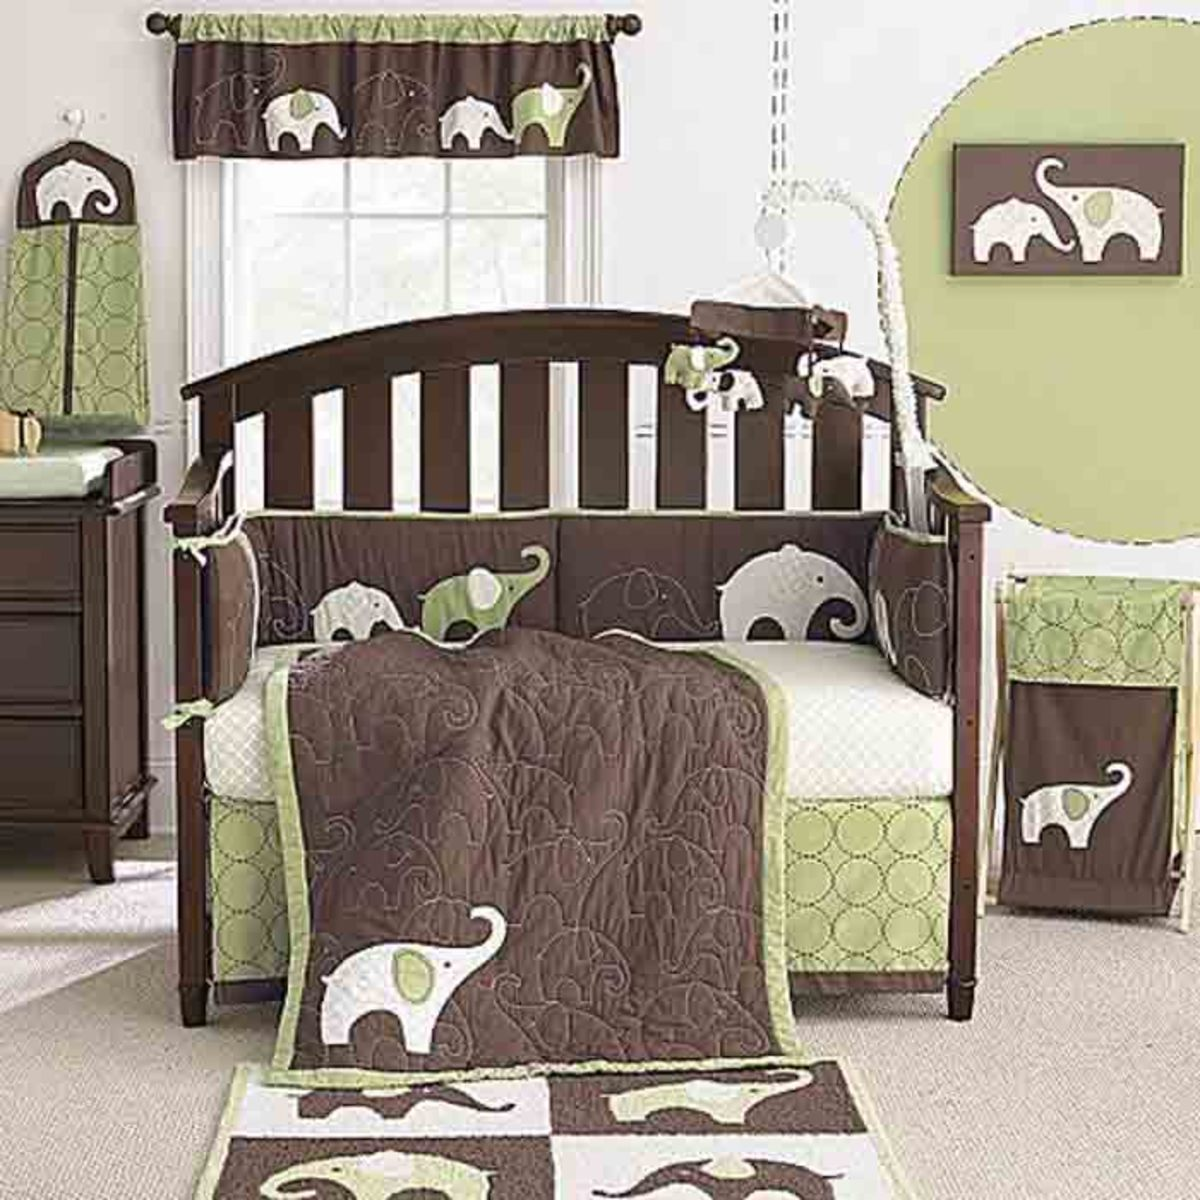 Decorating ideas for a baby boy nursery for Baby hospital room decoration